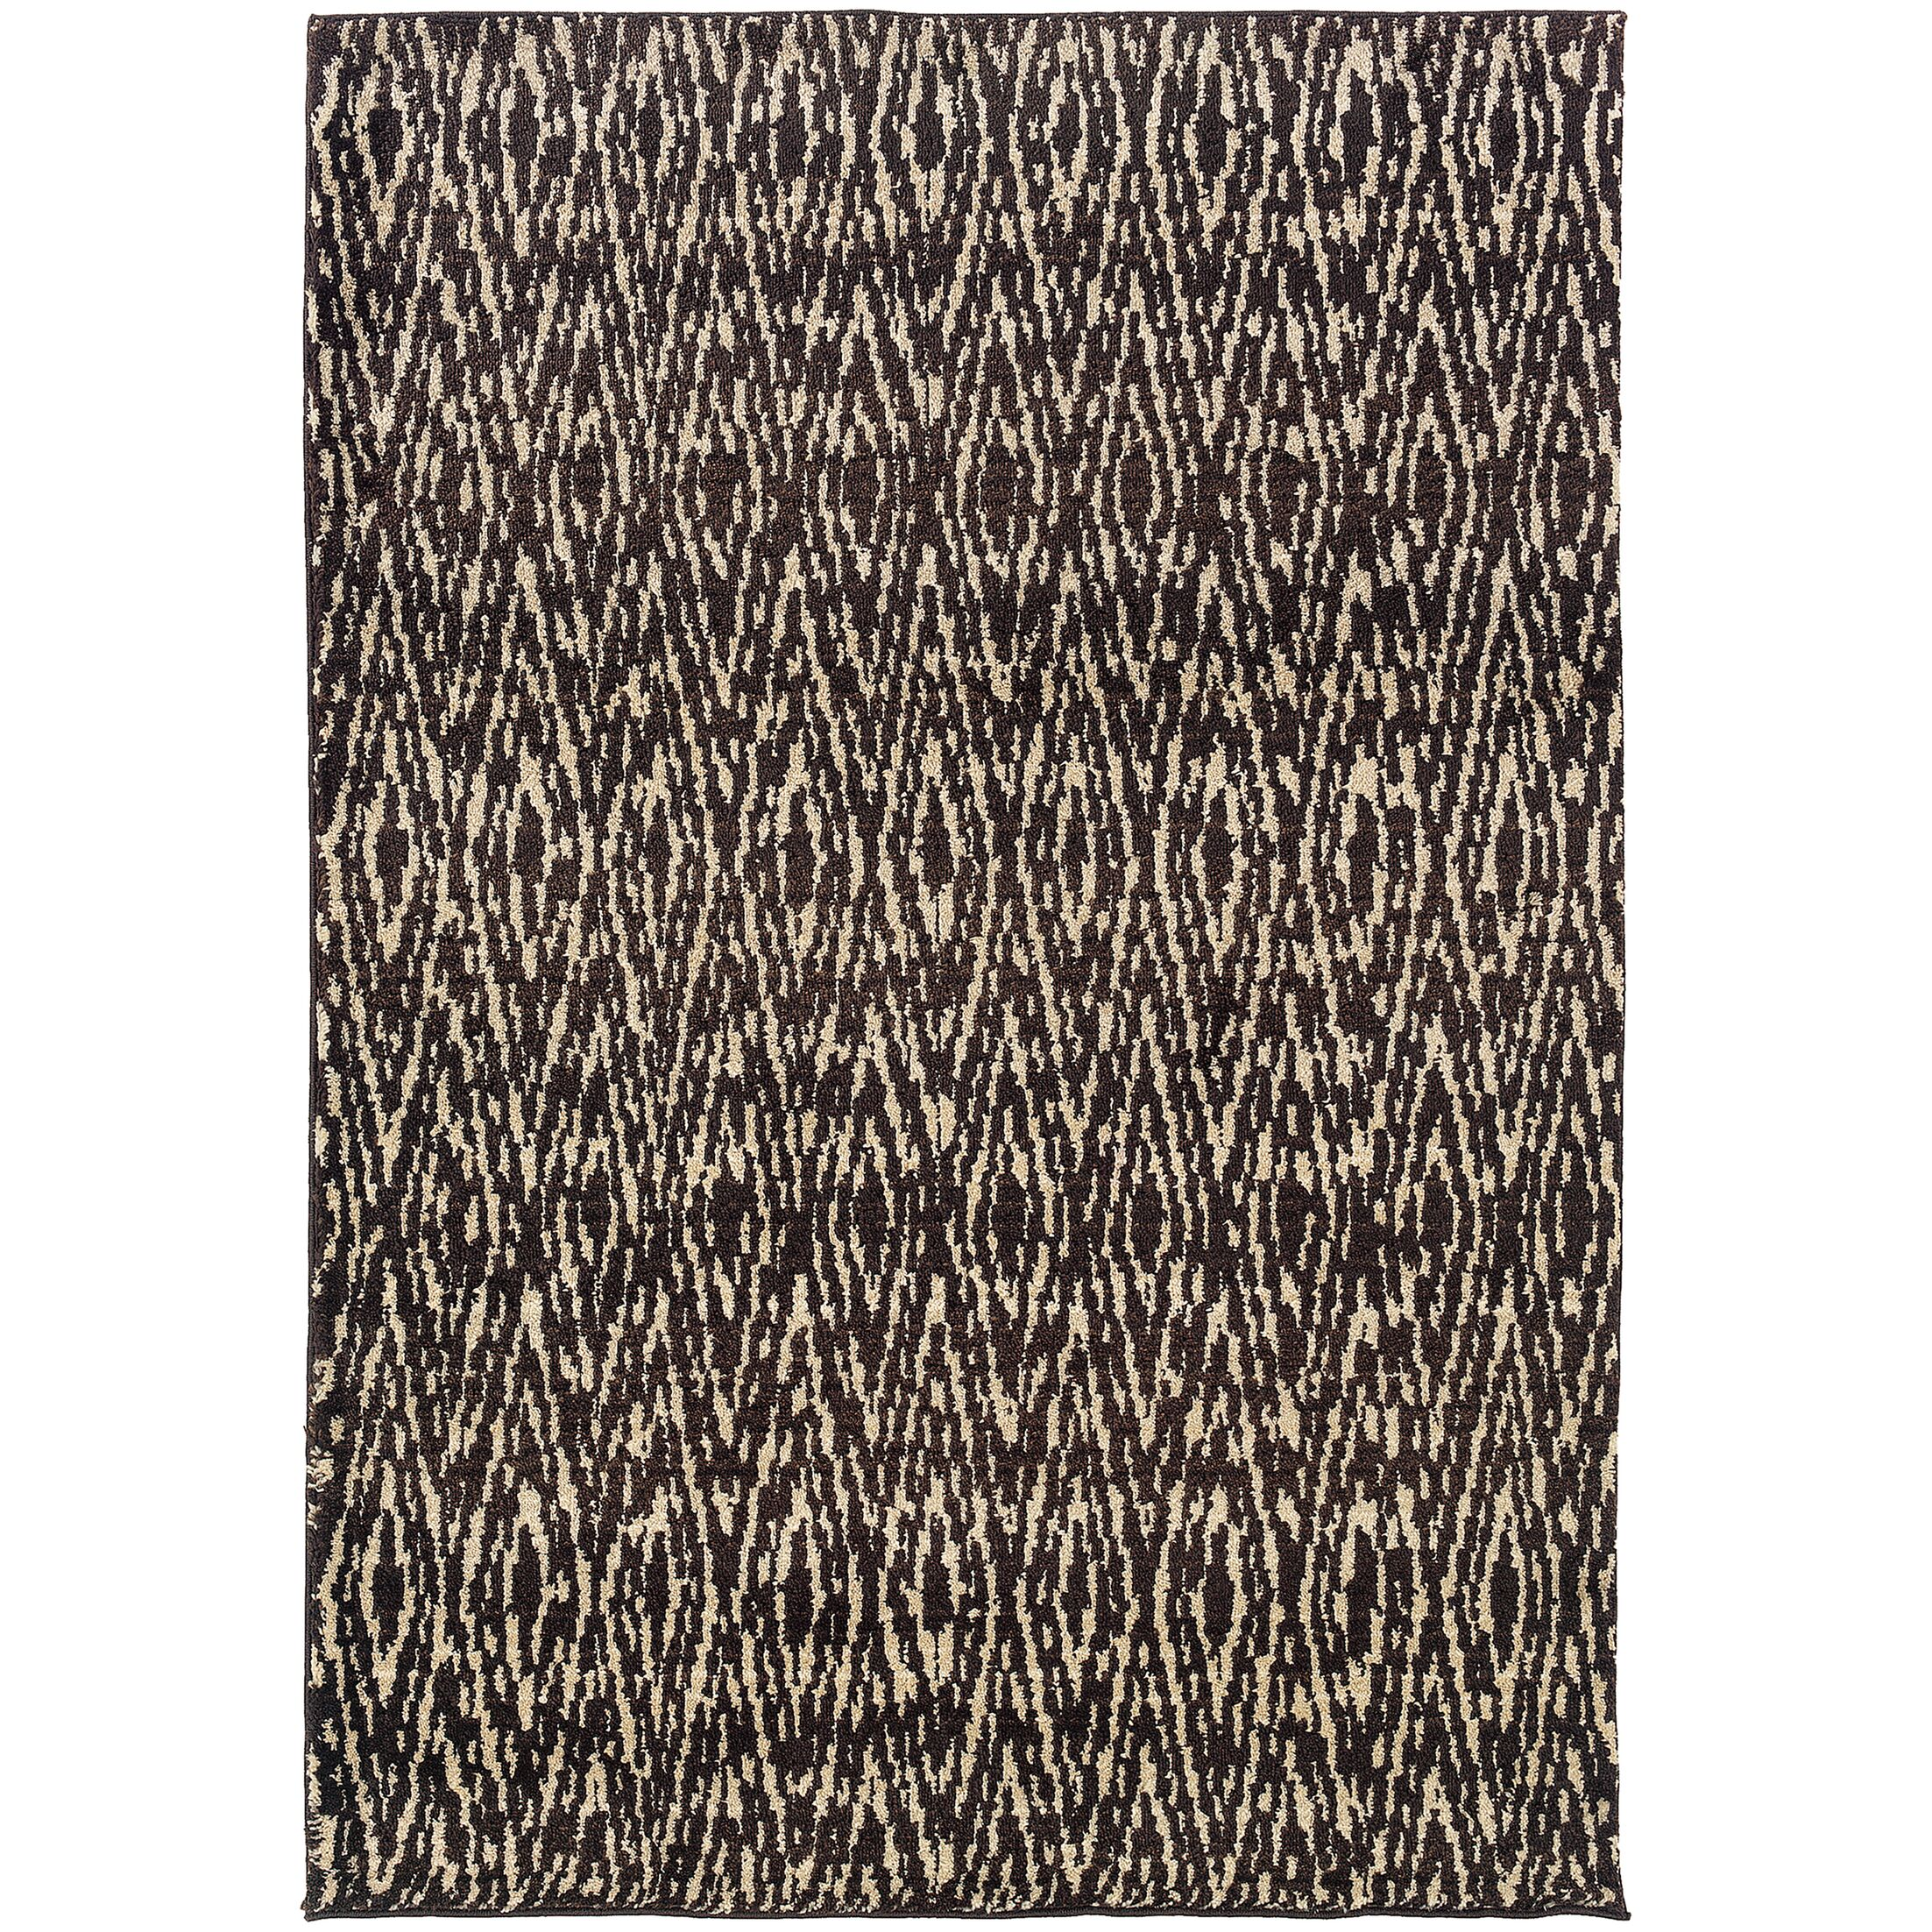 Feltner Ivory/Gray Area Rug Rug Size: Rectangle 5'3